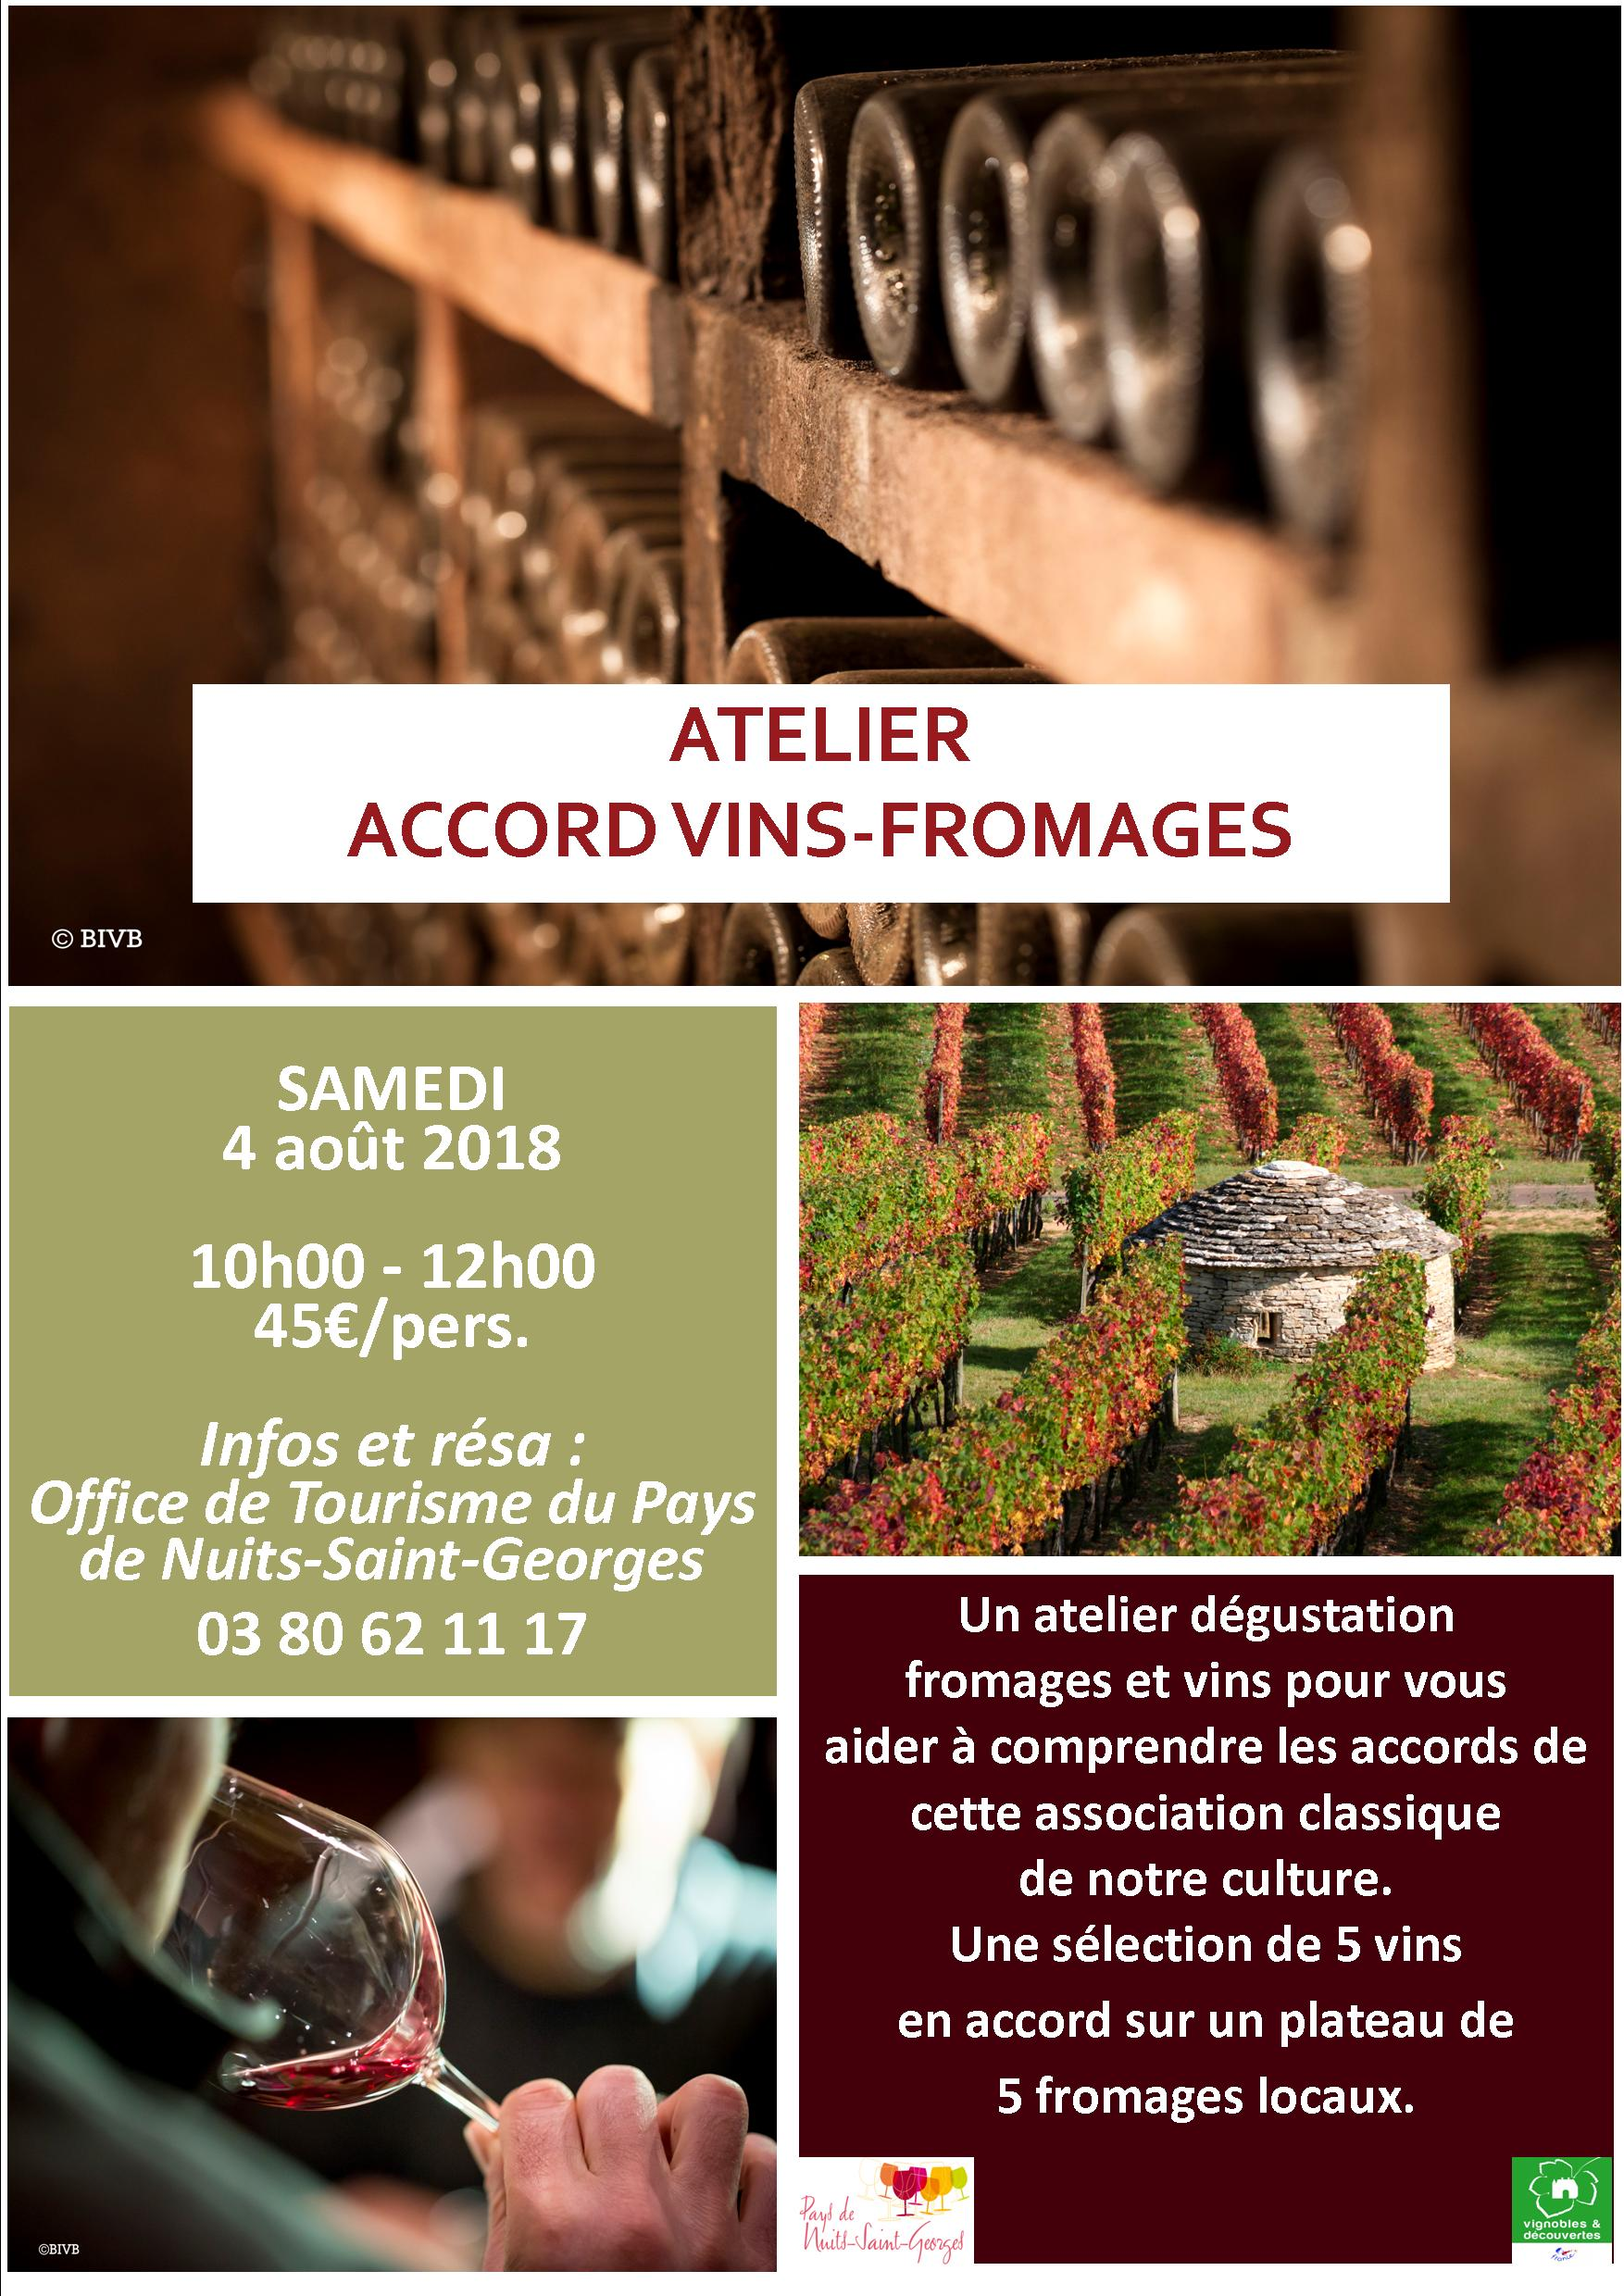 Atelier accords vins - fromages